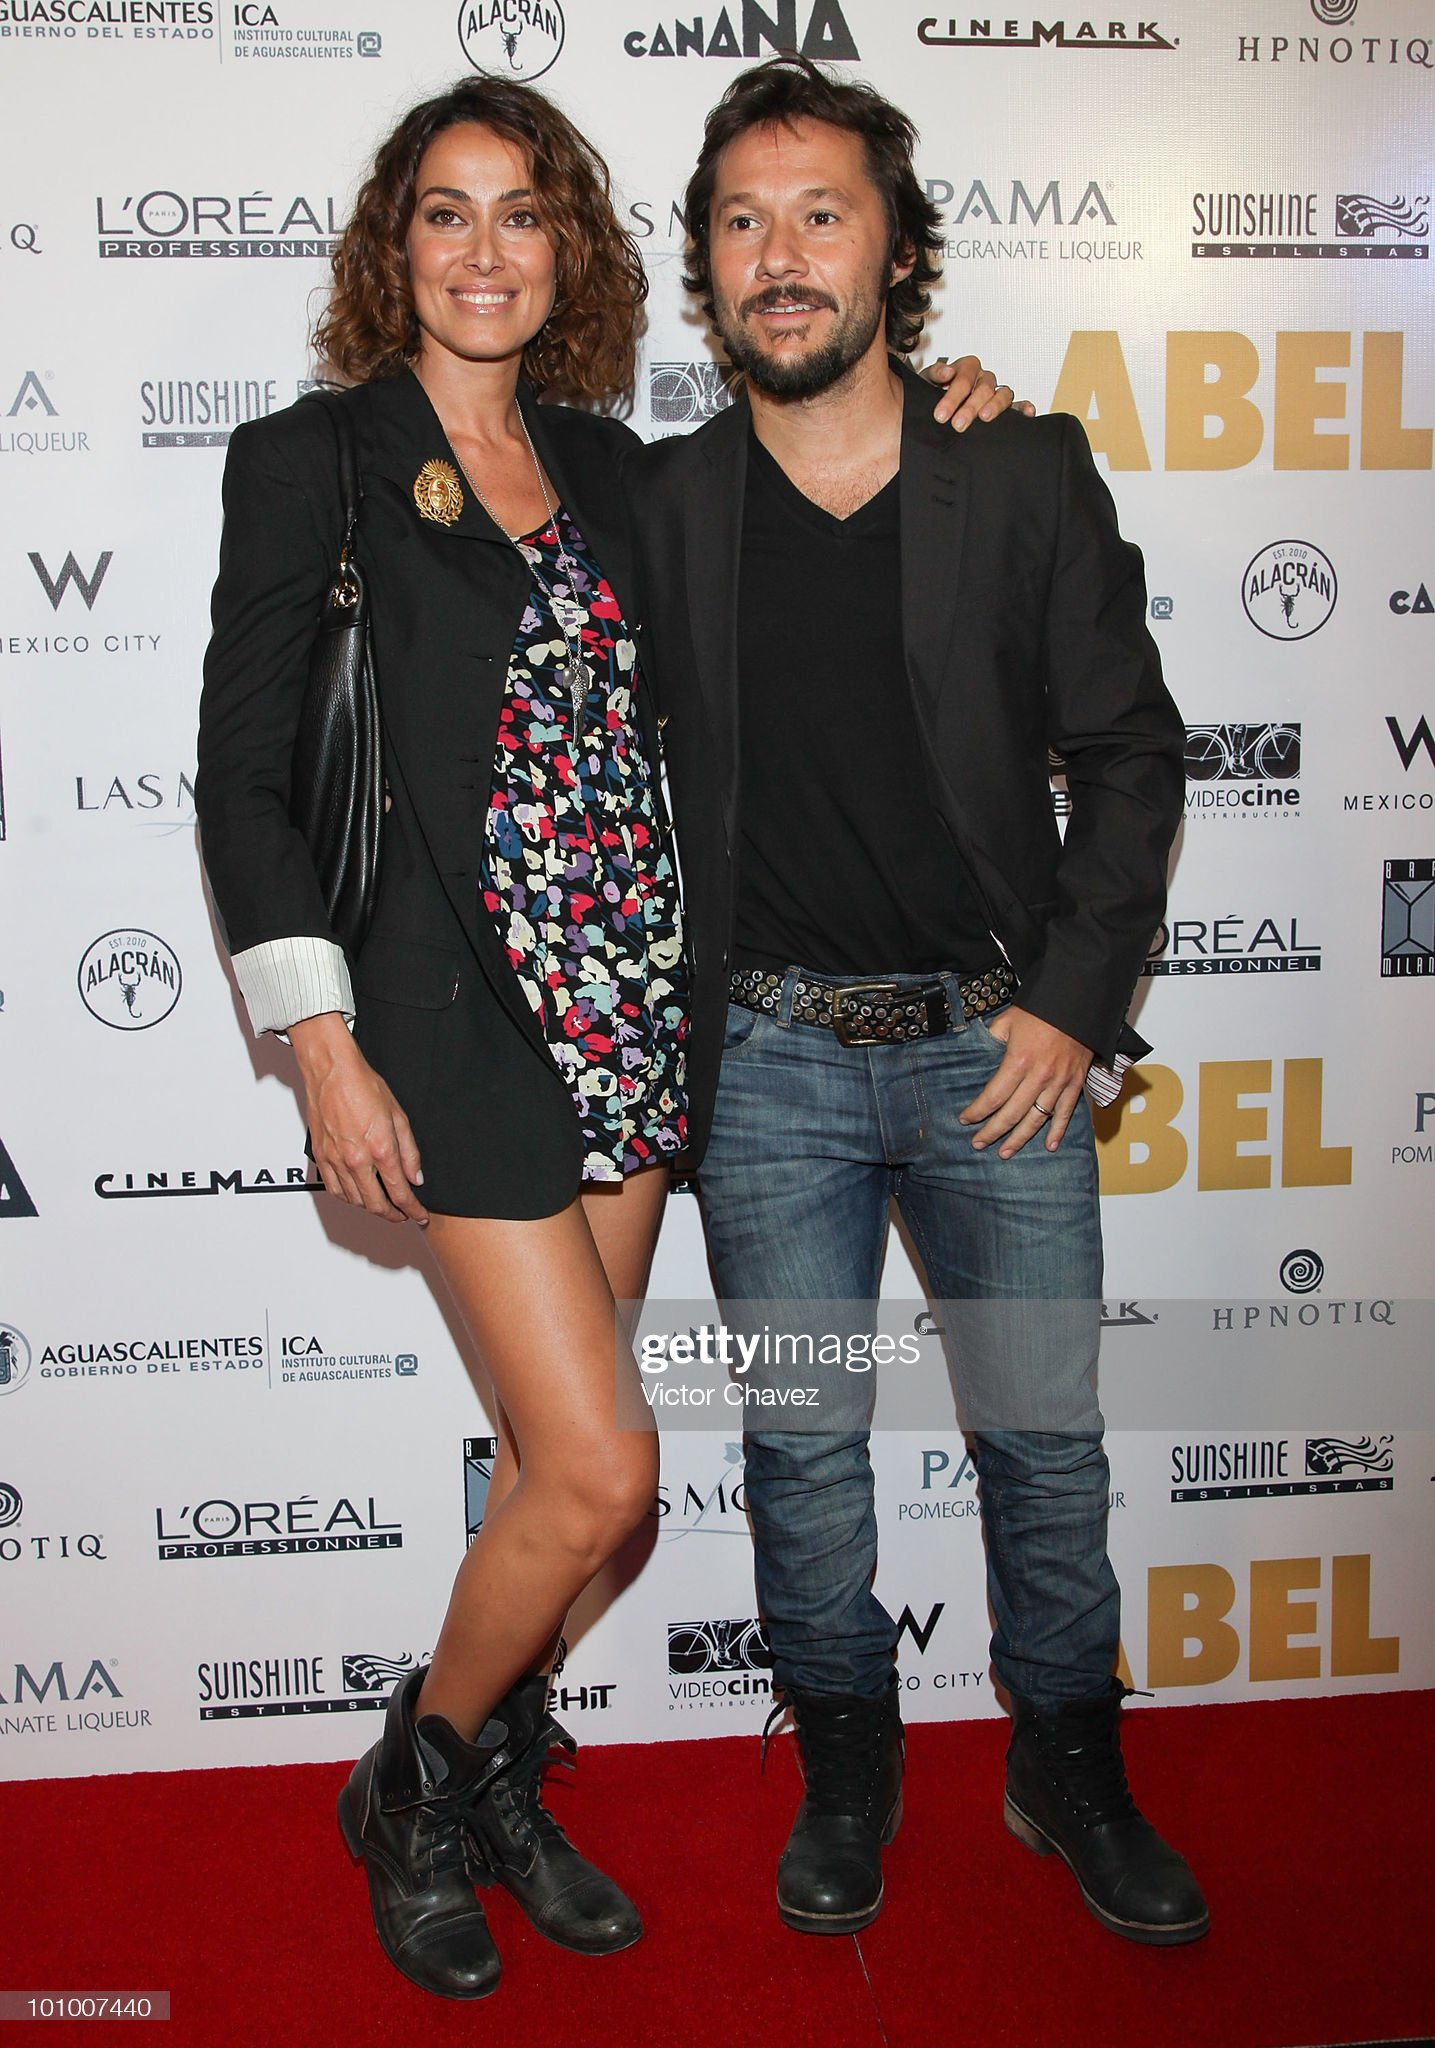 ¿Cuánto mide Diego Torres? - Altura Singer-diego-torres-and-his-wife-debora-bello-attend-the-abel-mexico-picture-id101007440?s=2048x2048